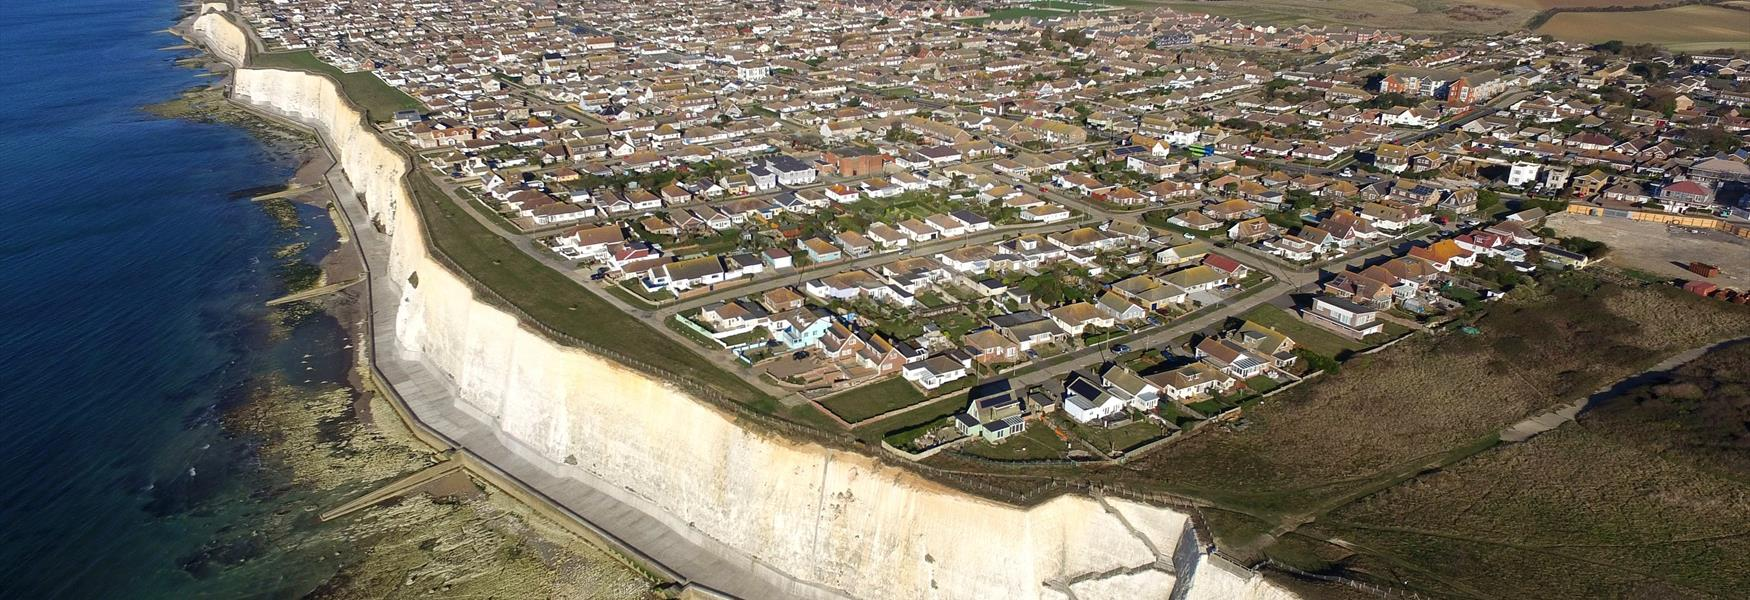 Peacehaven Cliffs - Peter Cripps